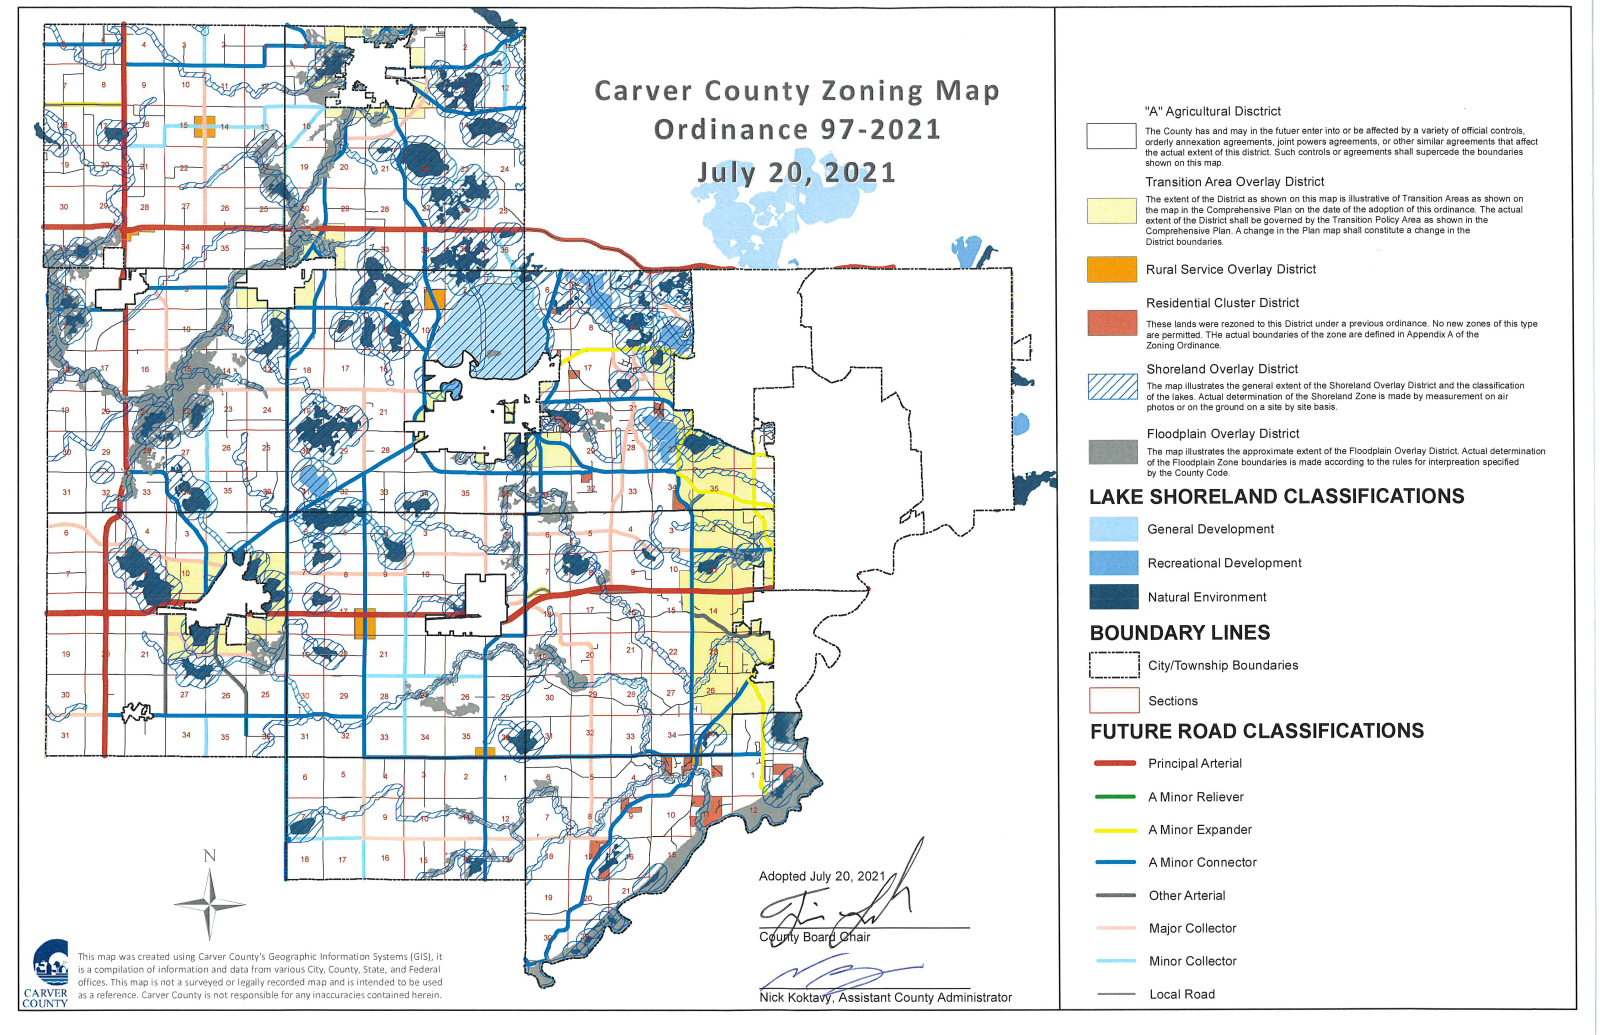 Map of Carver County